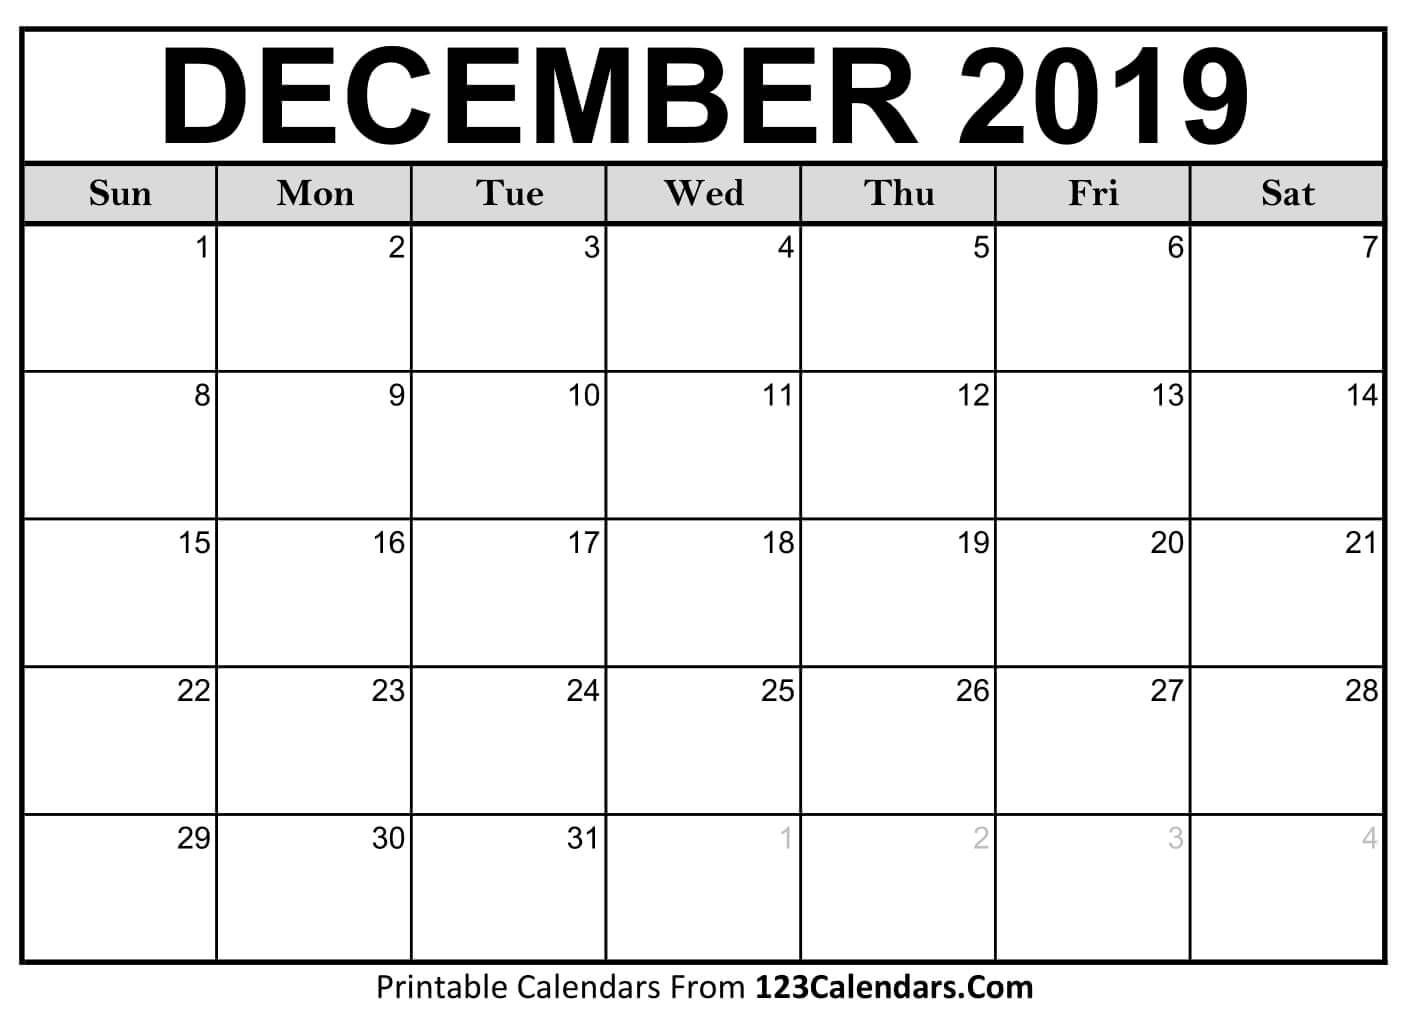 Printable December 2019 Calendar Templates  123Calendars with 123 Calendars January 2020